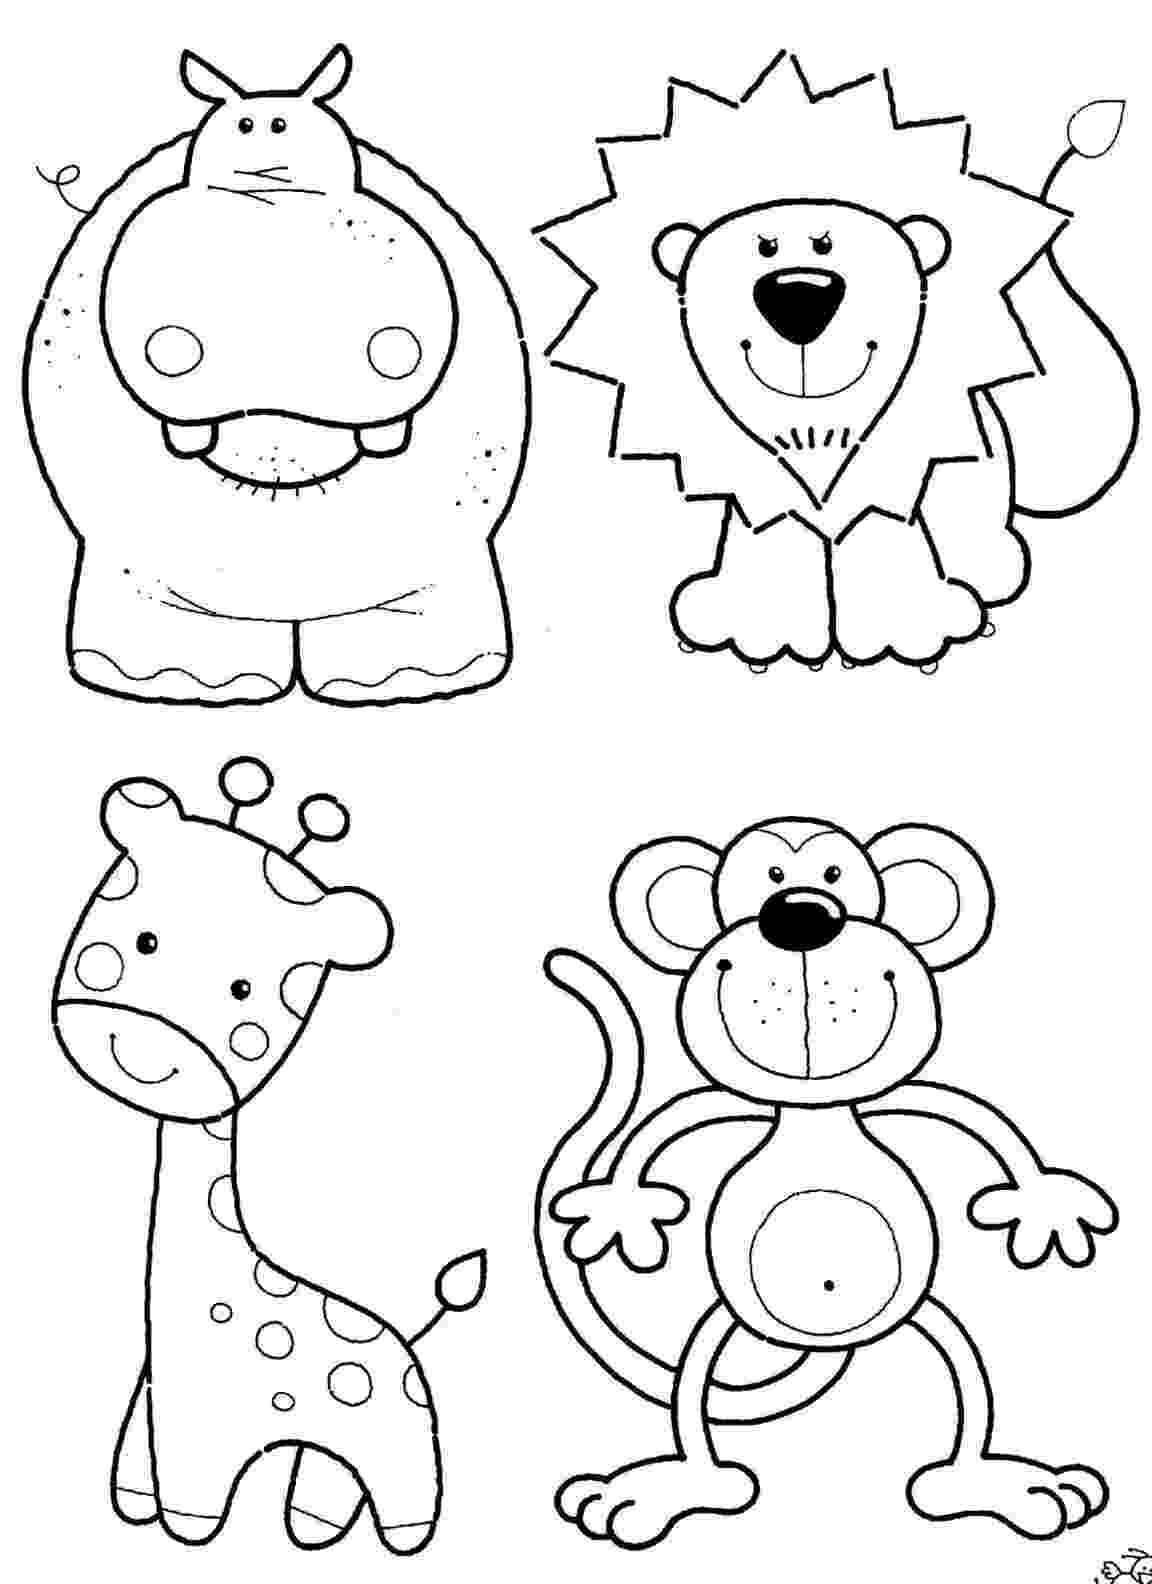 jungle animal coloring pages jungle safari coloring pages images of animal coloring jungle animal pages coloring